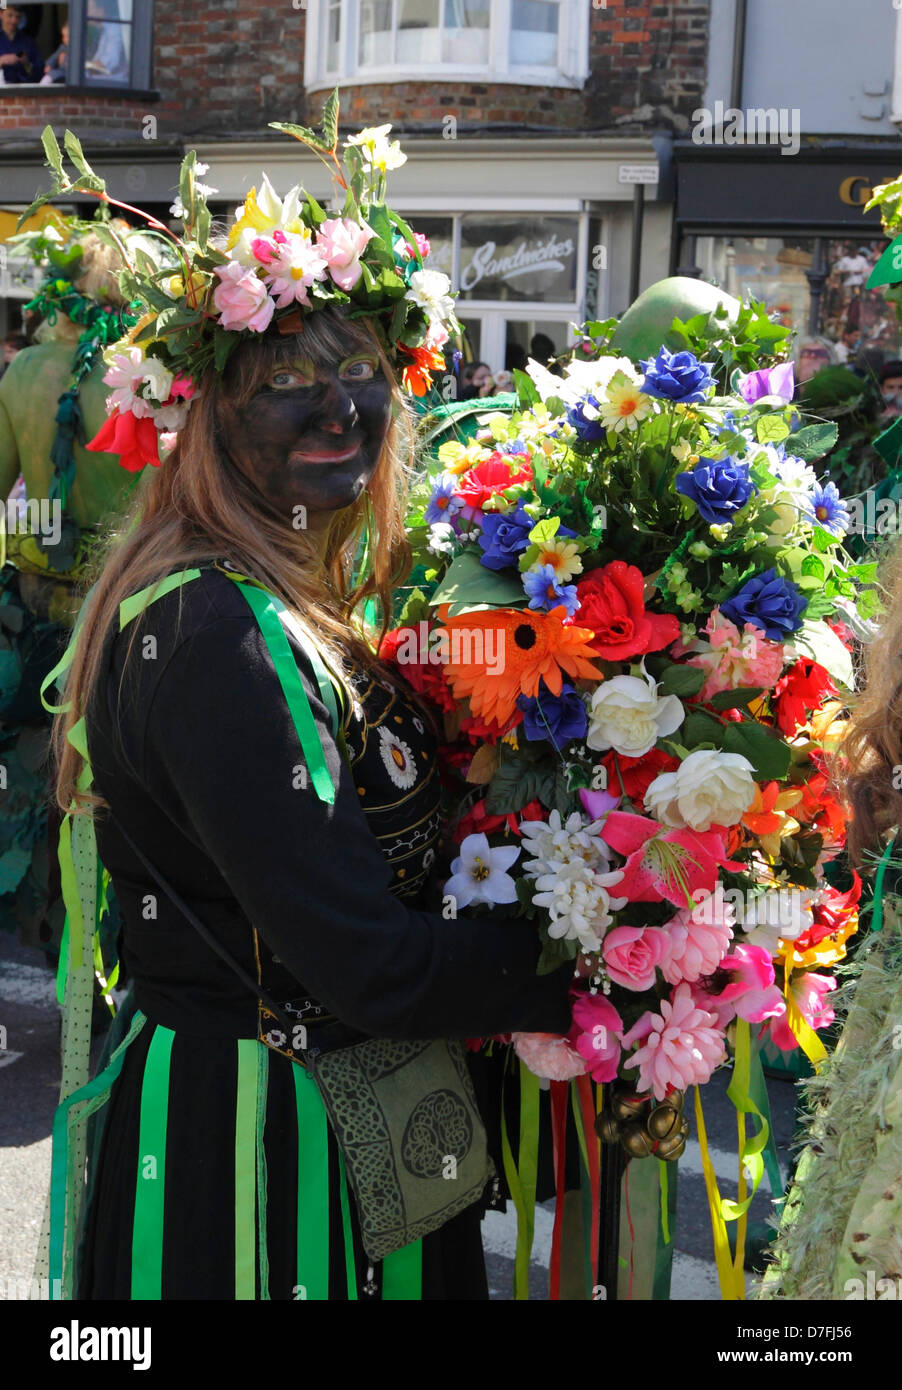 Black Sal, traditional figure at the annual Jack in the Green May Day Parade Hastings, East Sussex, England, GB, - Stock Image